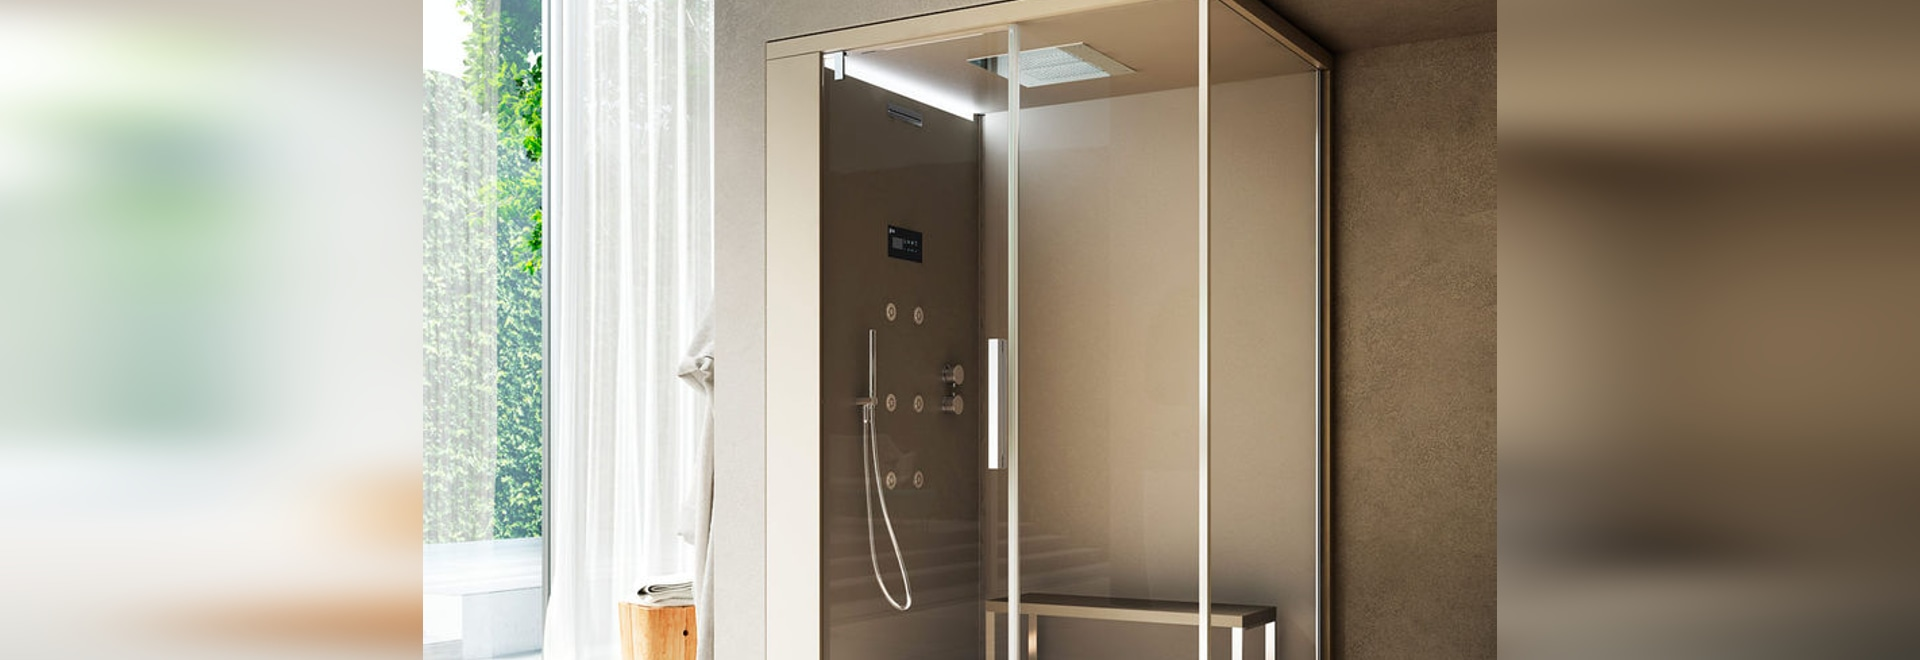 NEW: steam shower cubicle by GLASS 1989 - GLASS 1989